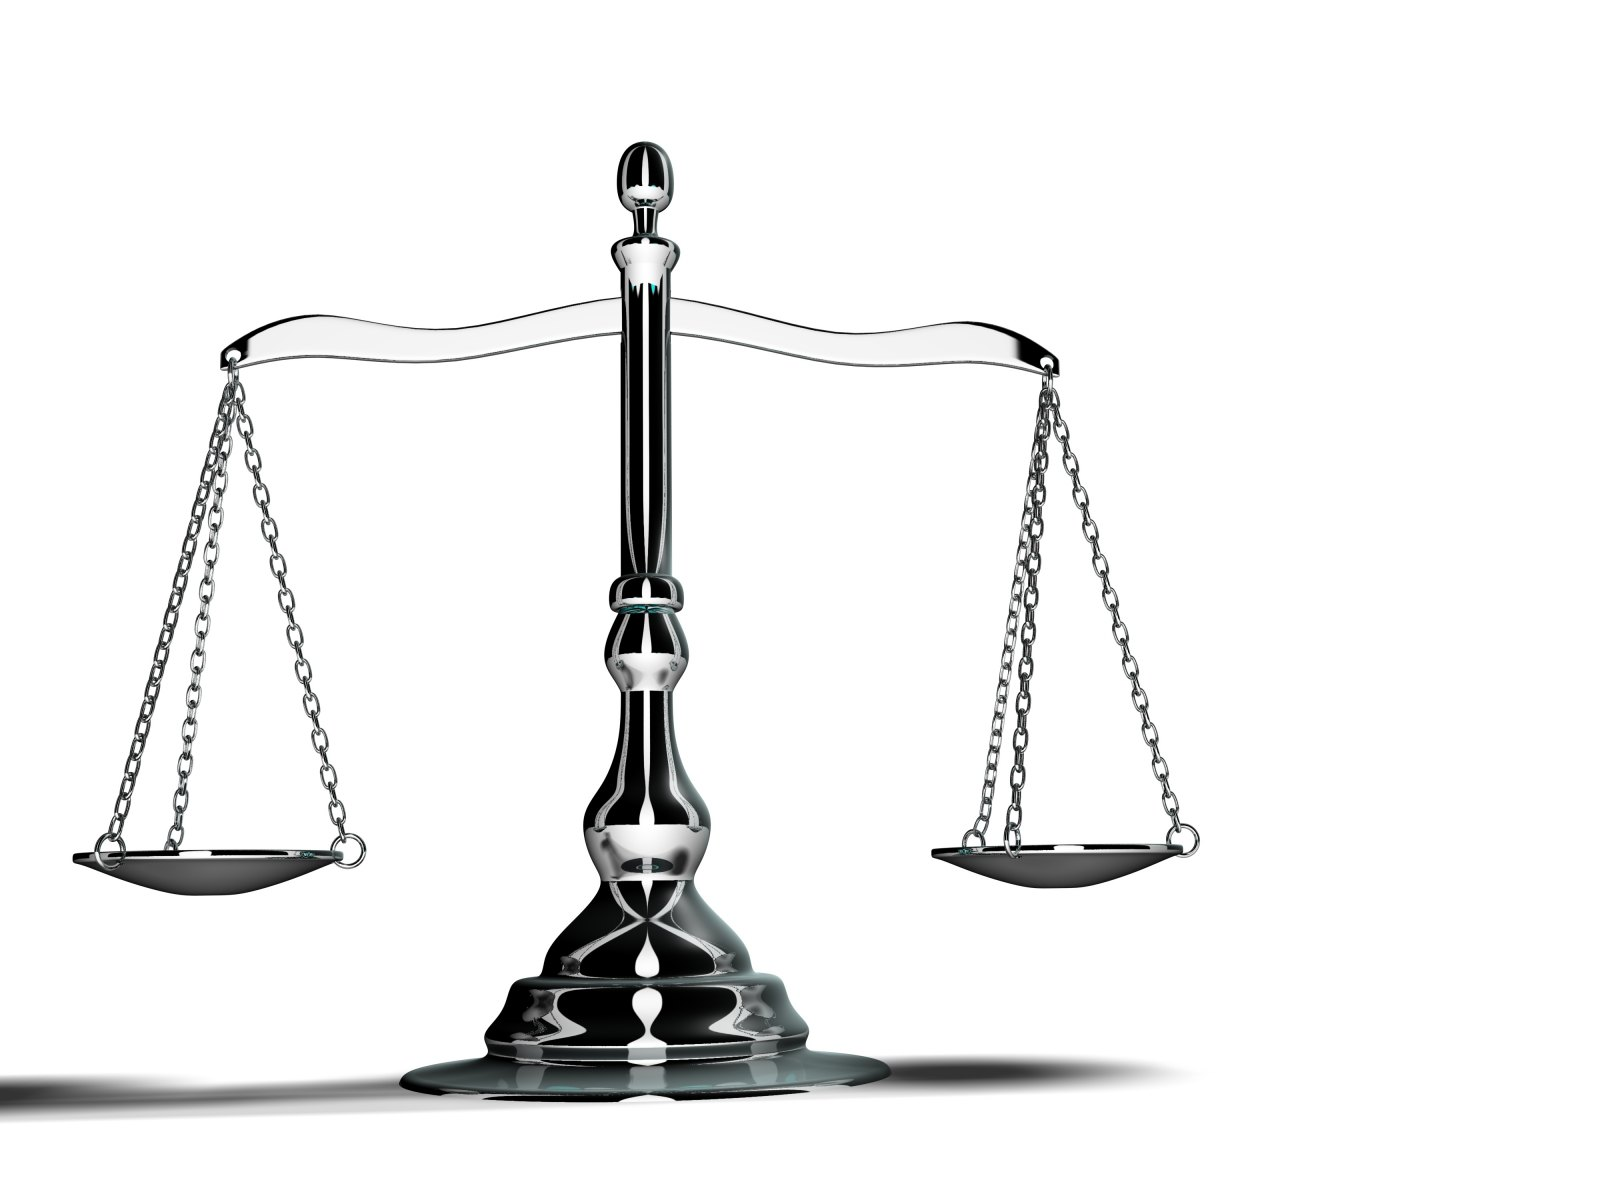 Arbitration Follow Justice Or Follow Law